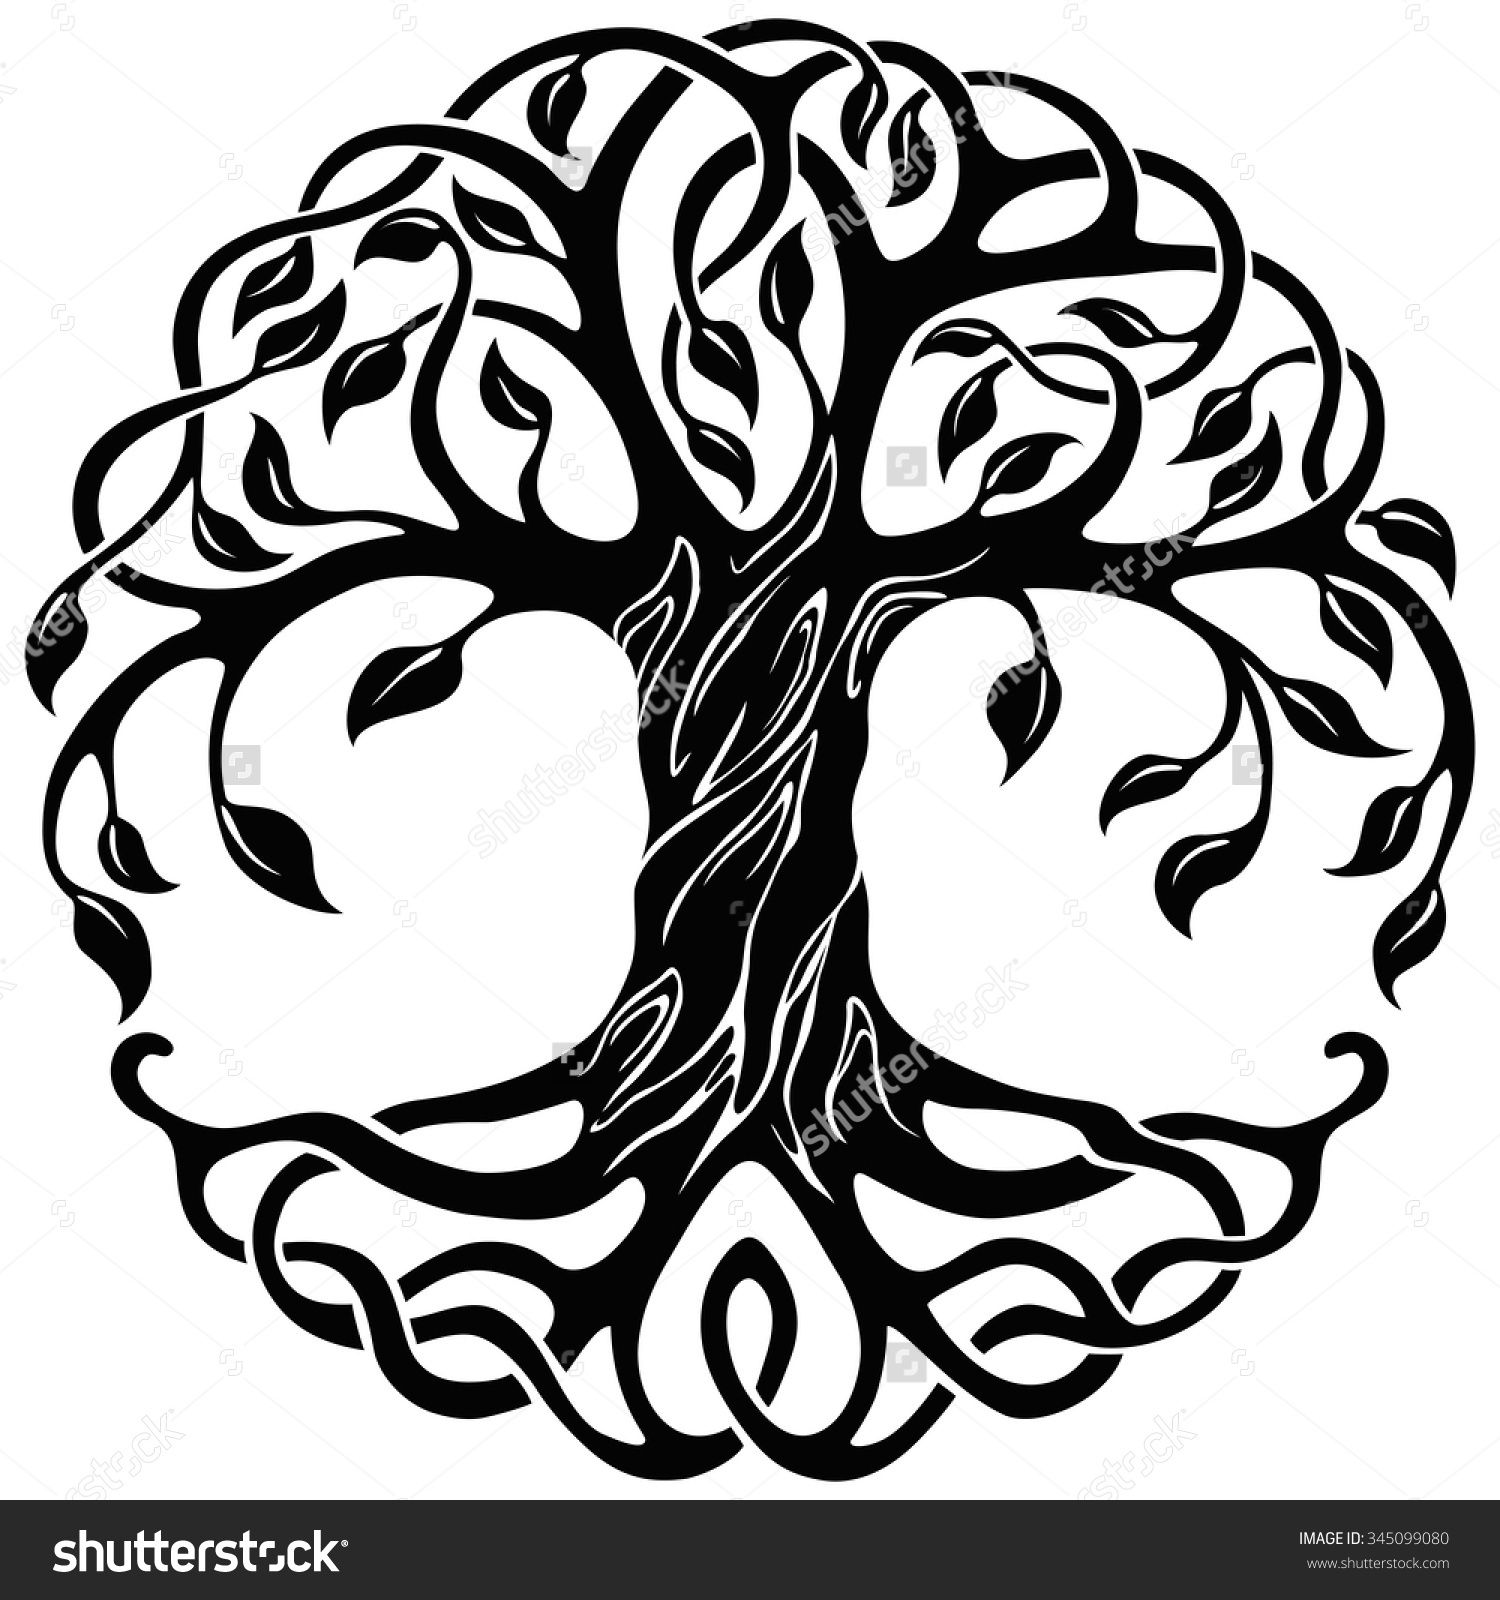 Tree of with roots. Life clipart life symbol